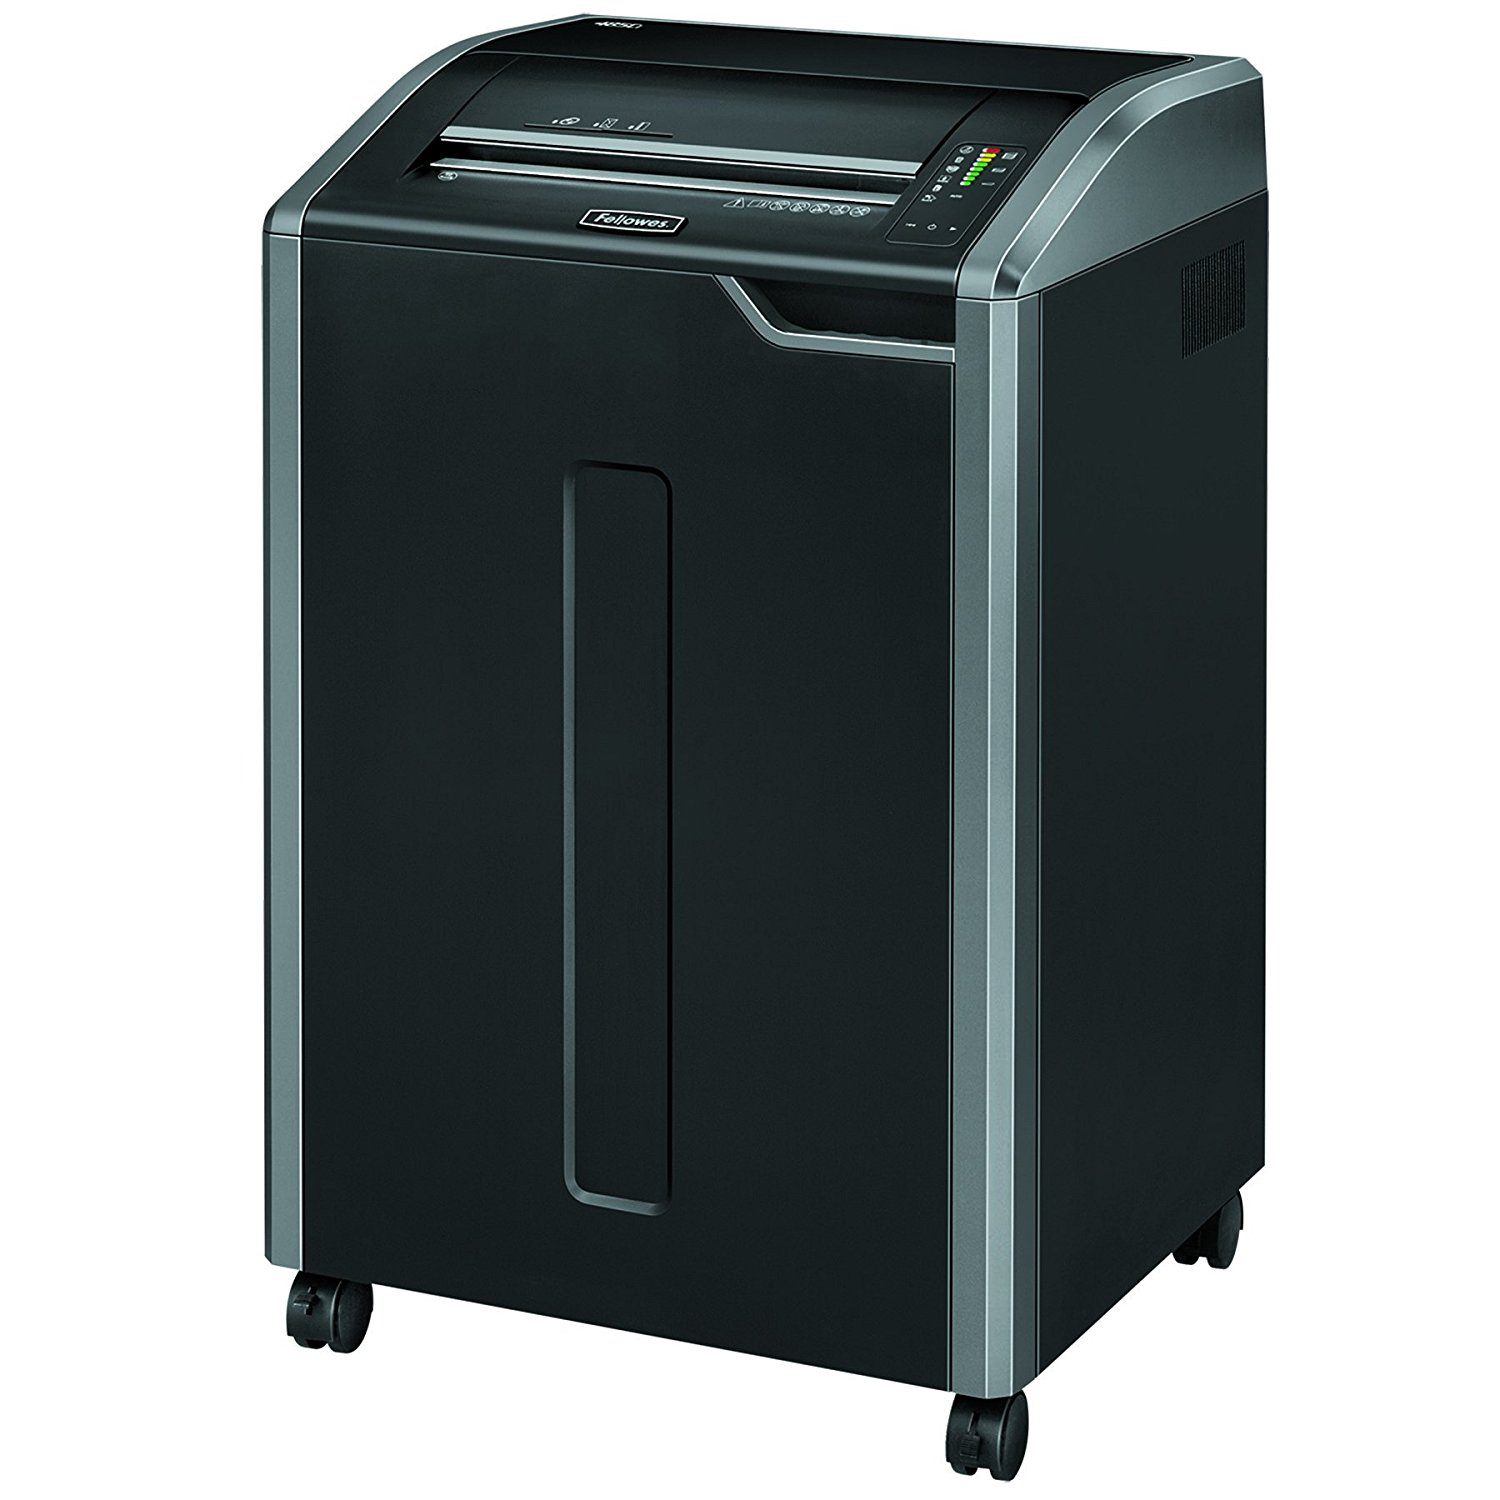 Fellowes 485ci shredder